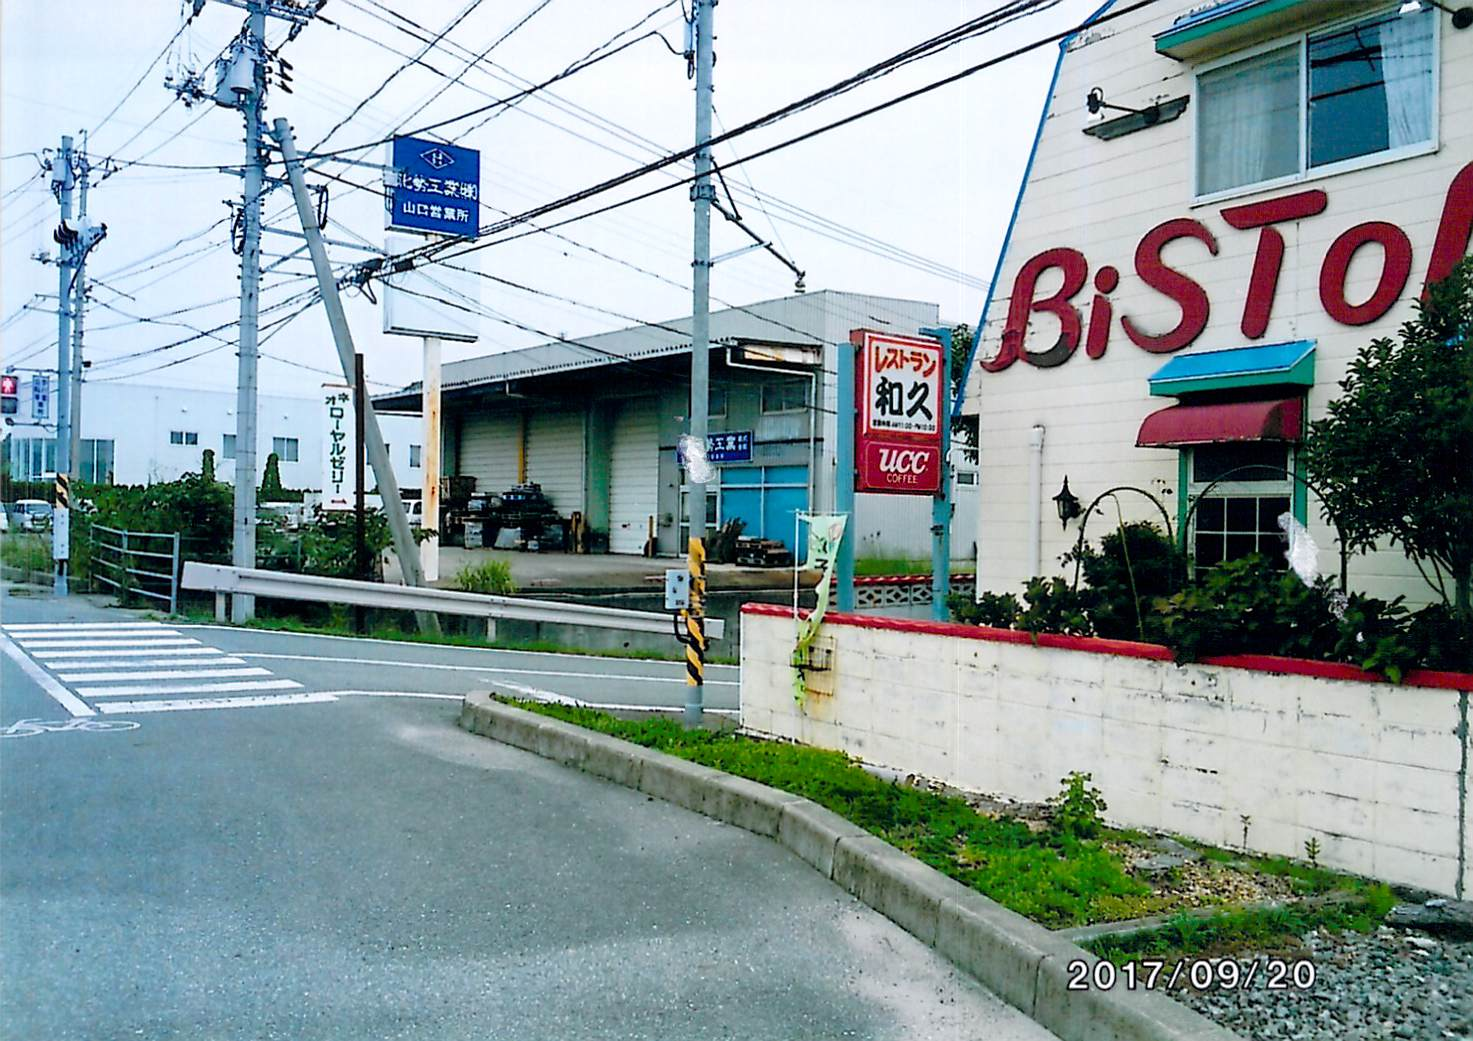 <br /> <b>Notice</b>:  Undefined variable: value in <b>/home/radsolutions/banjaku.co.jp/public_html/wp/wp-content/themes/banjaku/page-shops.php</b> on line <b>667</b><br /> <br /> <b>Notice</b>:  Trying to get property of non-object in <b>/home/radsolutions/banjaku.co.jp/public_html/wp/wp-content/themes/banjaku/page-shops.php</b> on line <b>667</b><br />